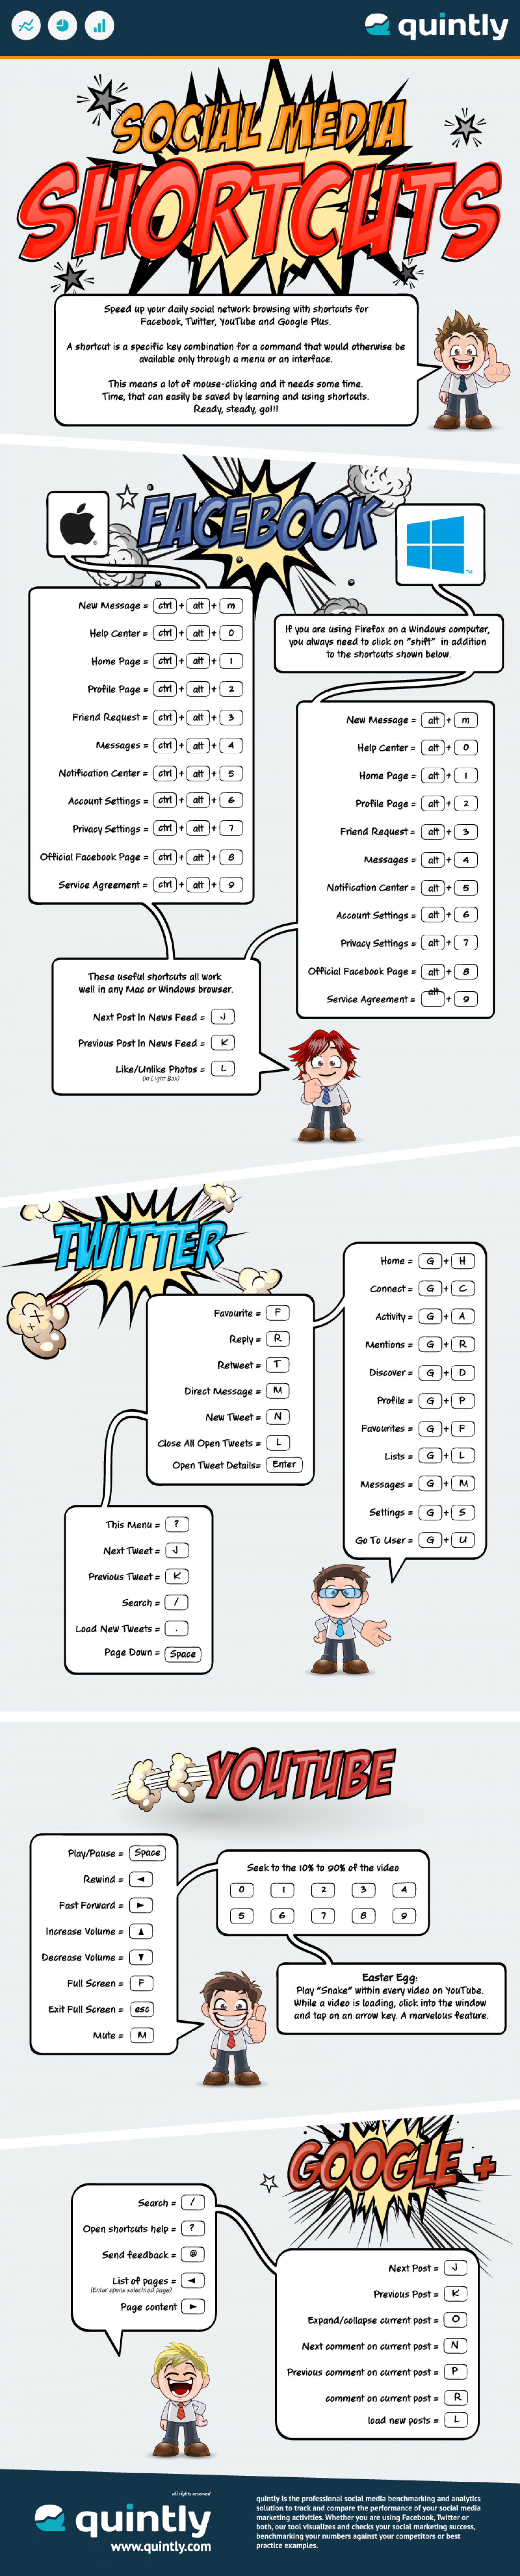 Social Media Shortcuts Infographic